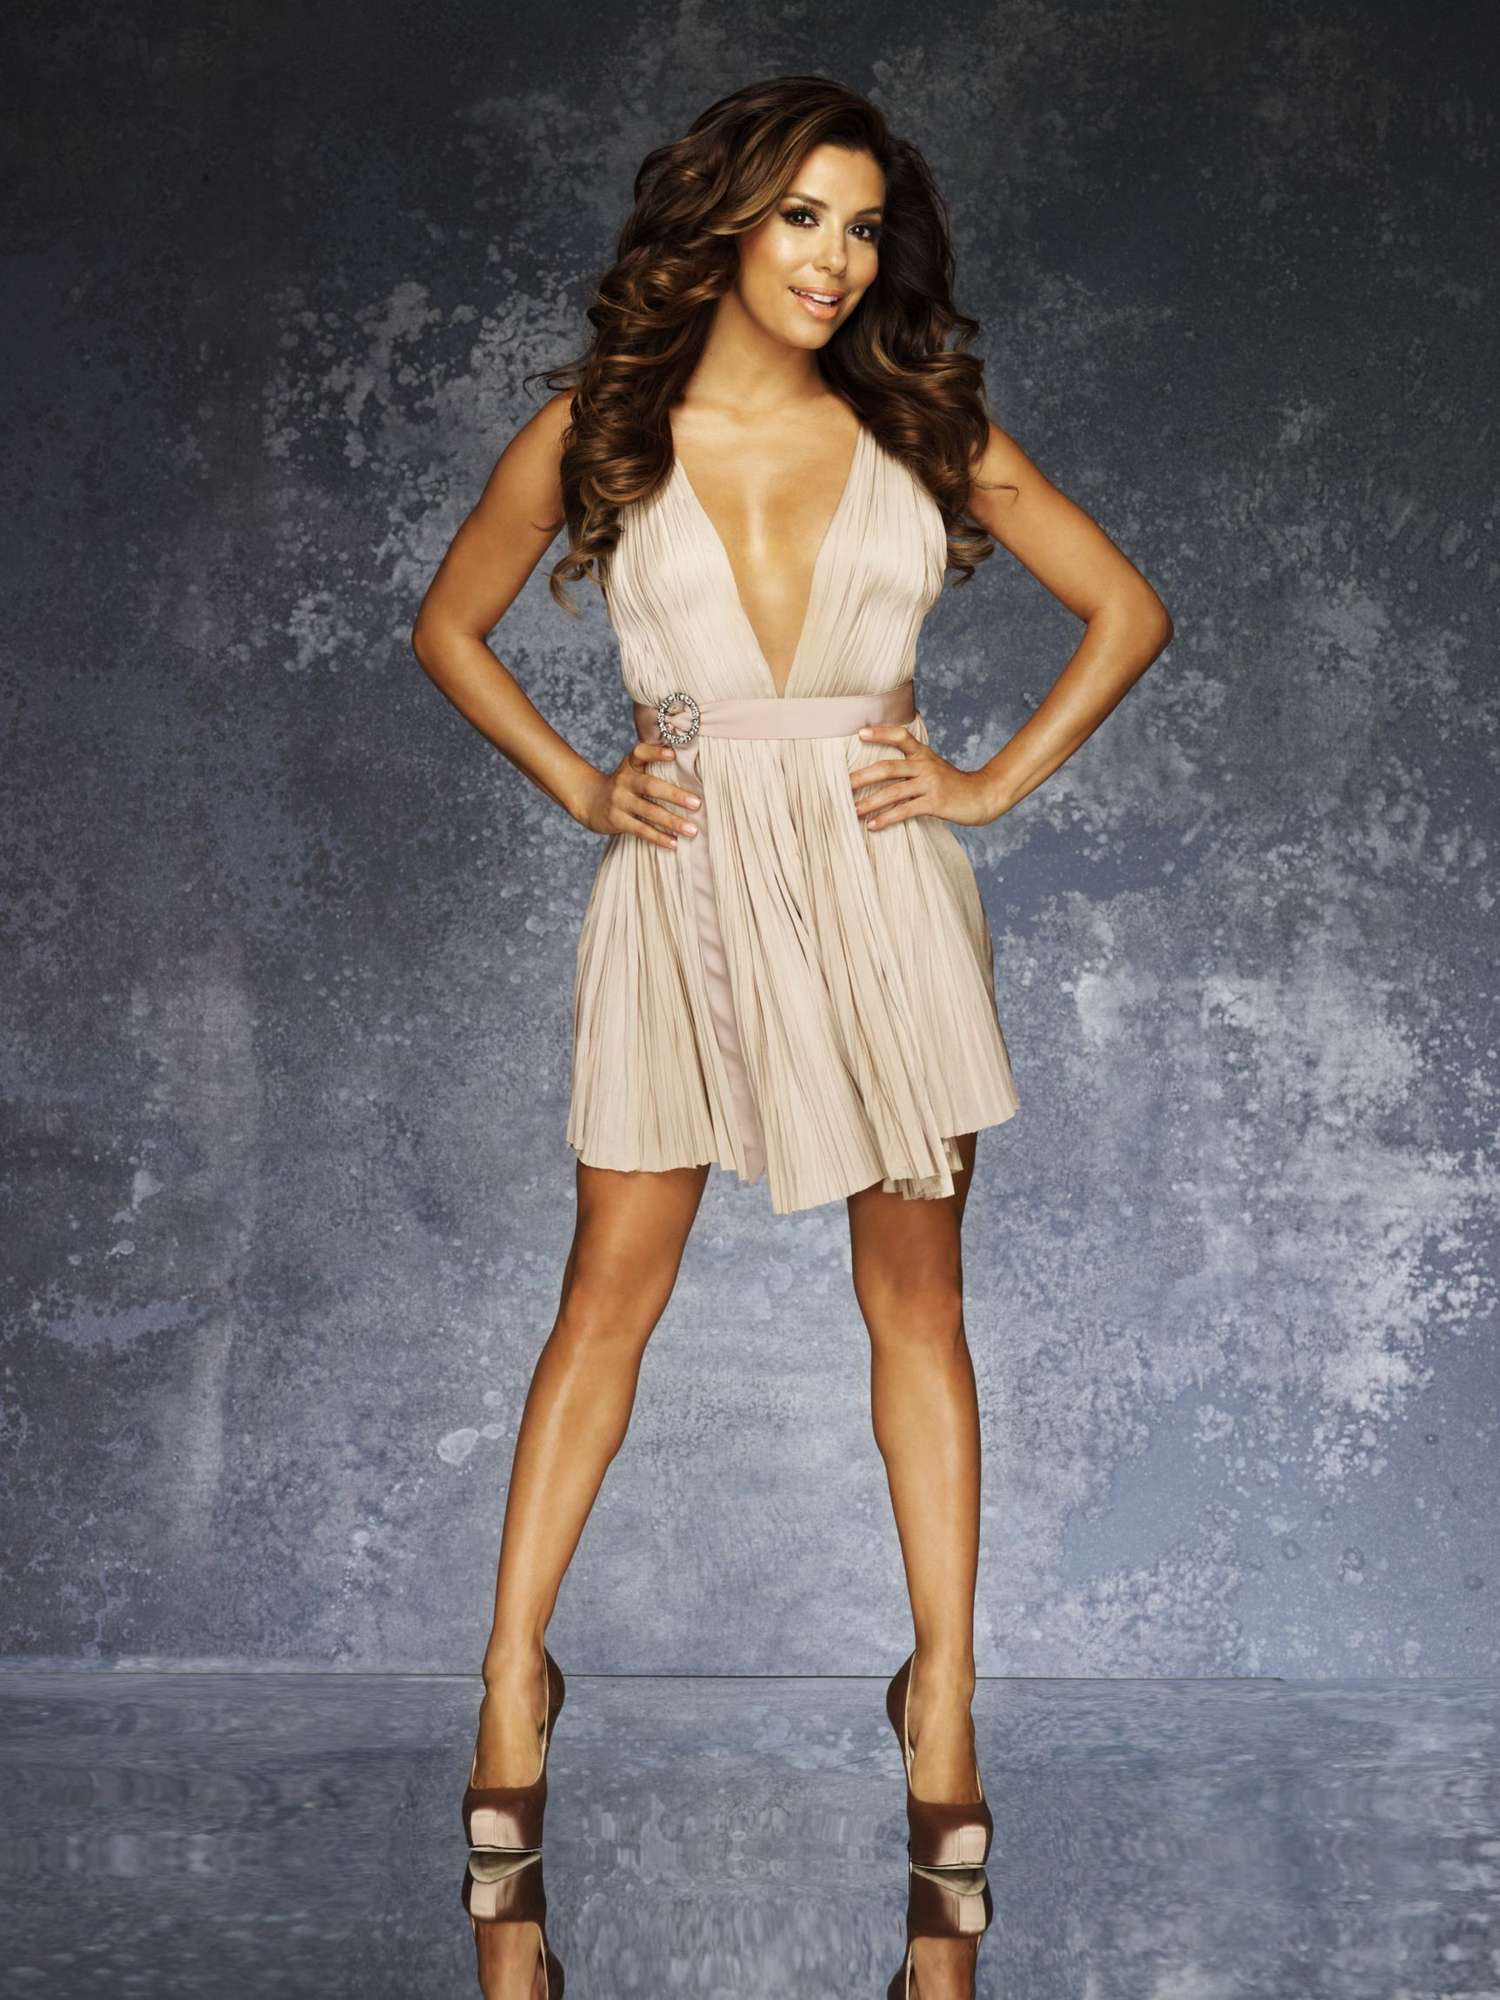 Eva Longoria Diet Plan and Workout Routine